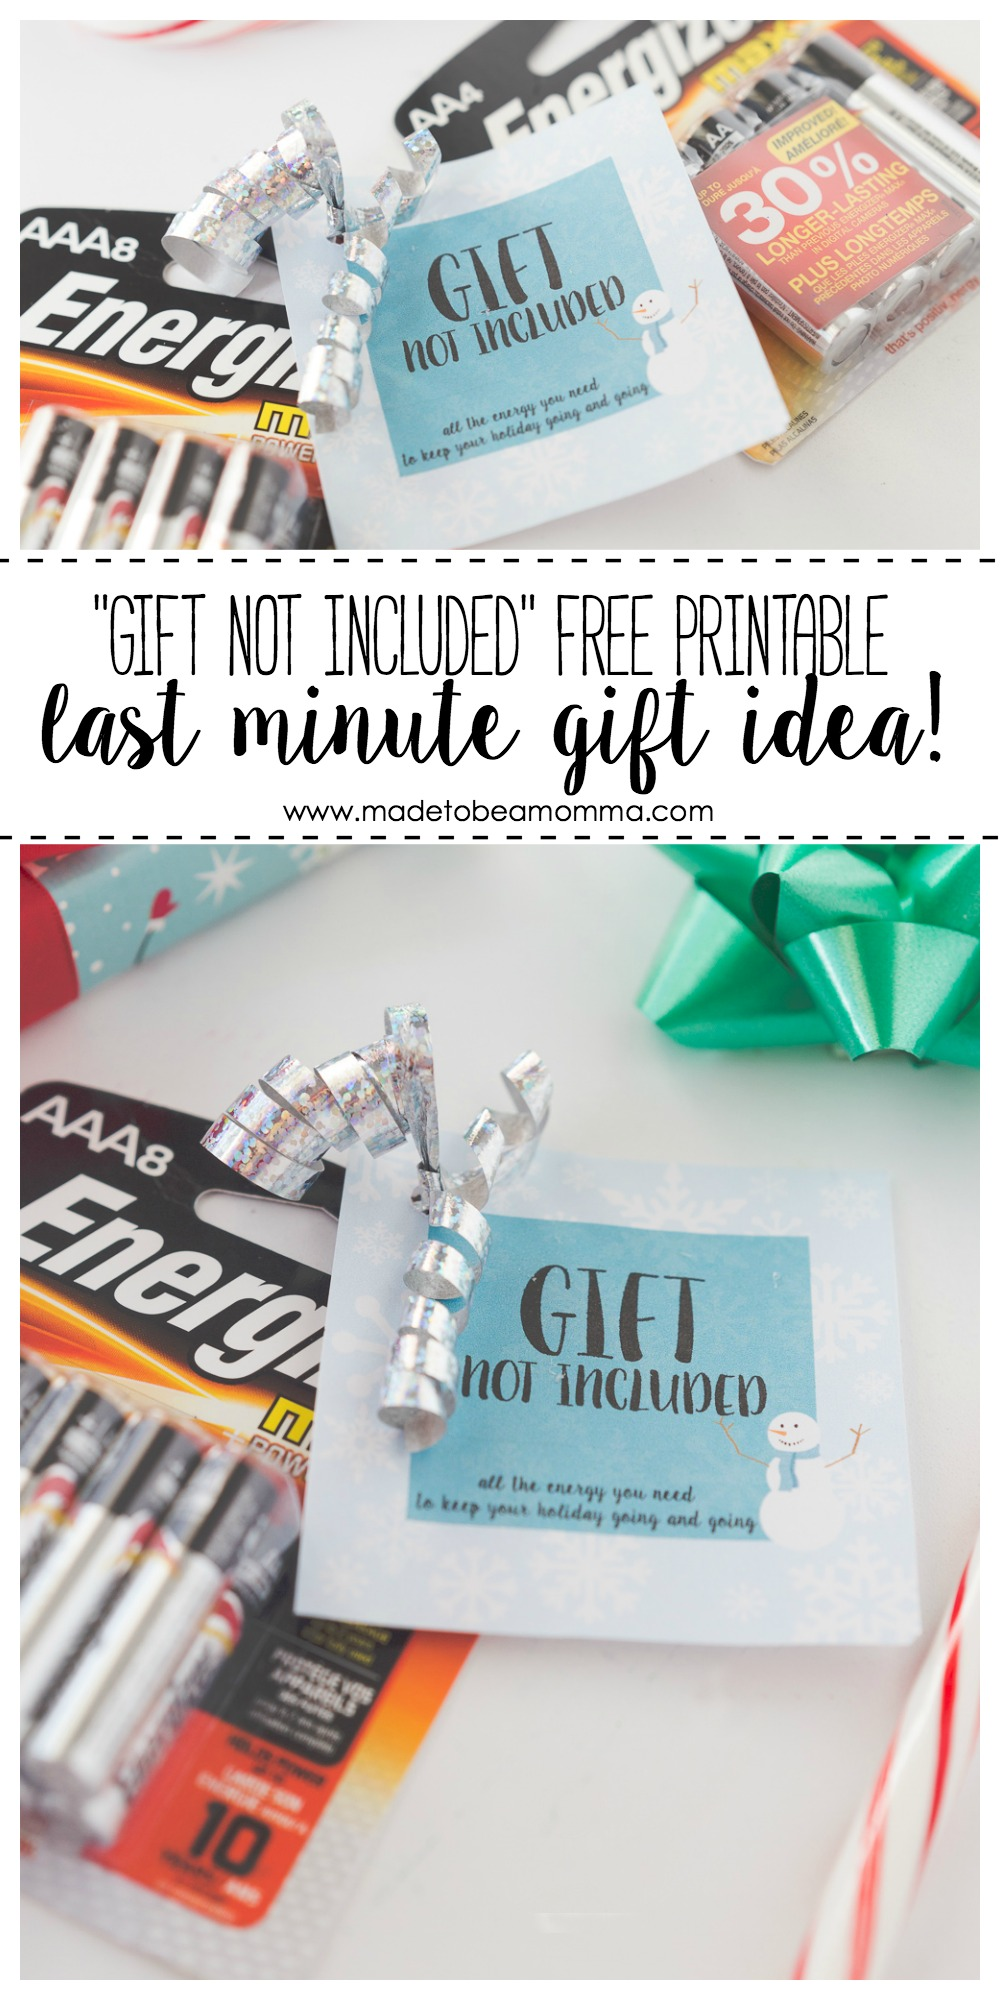 Last Minute Gift Idea: don't forget the batteries this Christmas season!  Come print a fun gift tag for the gift that will keep your holiday cheer going and going!